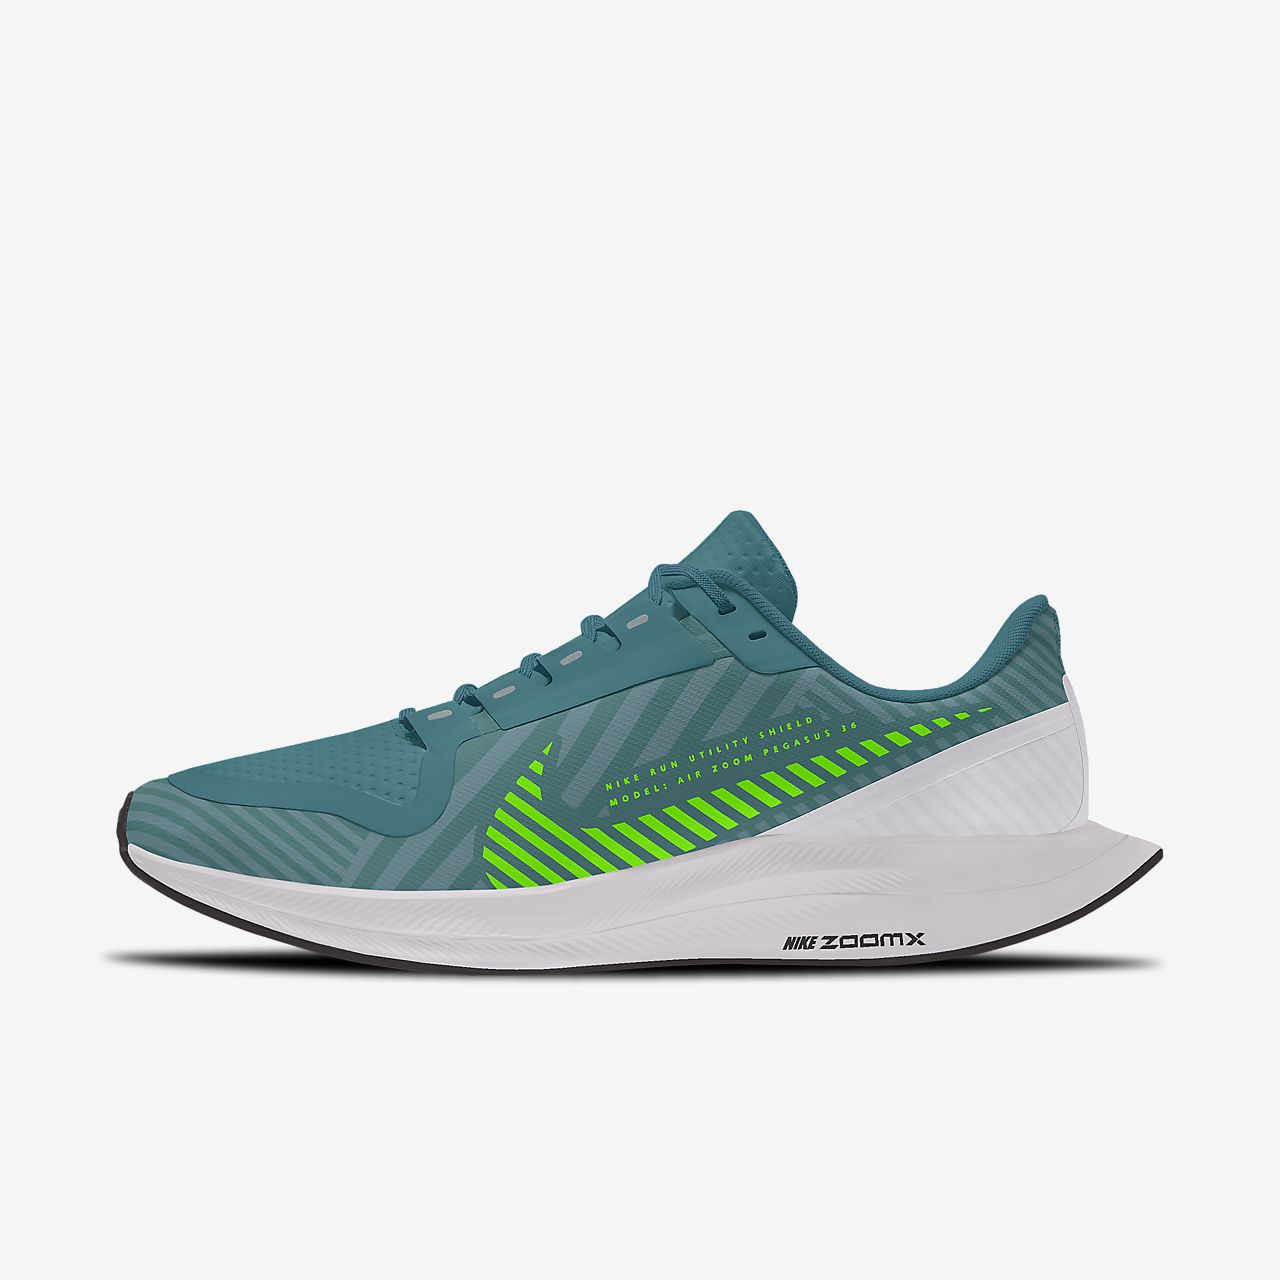 Chaussure de running personnalisable Nike Zoom Pegasus Turbo 2 Shield Low By You pour Homme